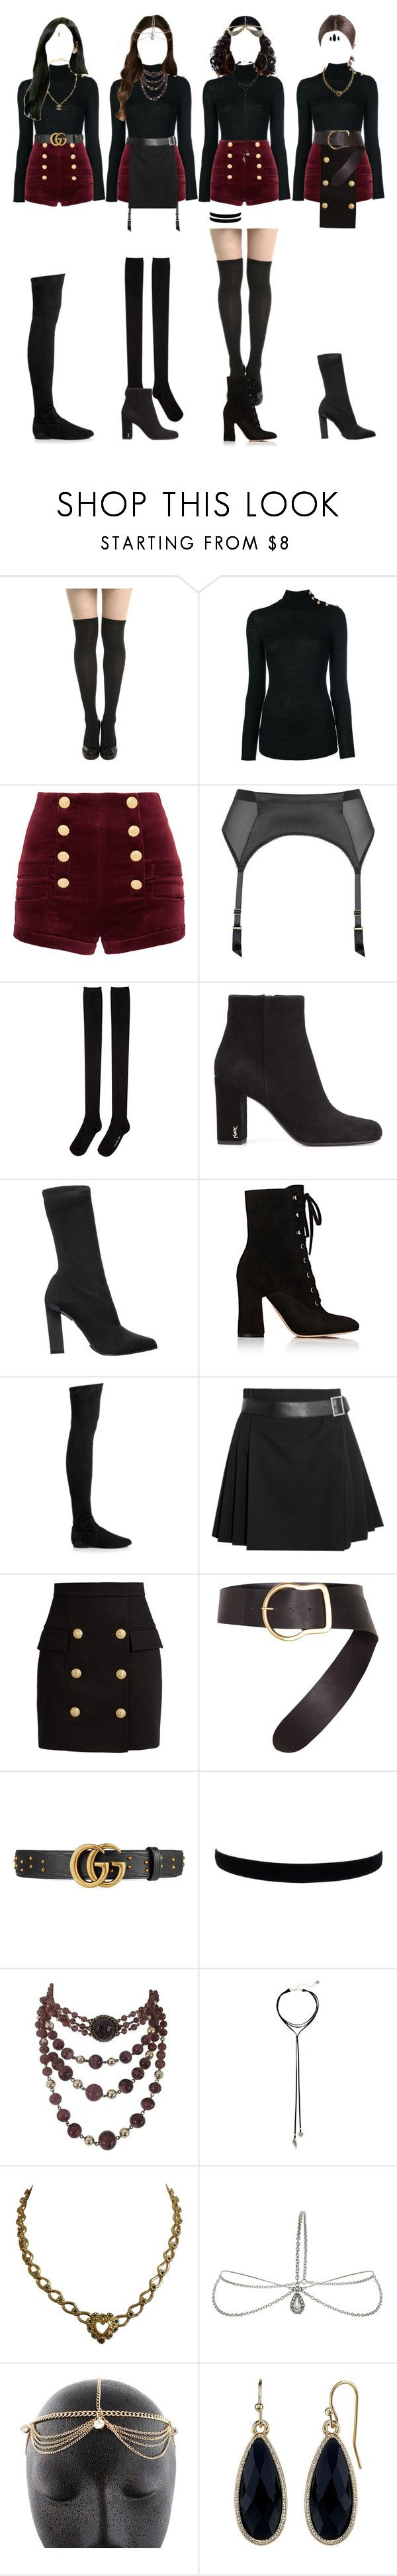 """""""[ live ] G-1 _ NIGHT pt.1"""" by xxzodiacentertainmentxx ❤ liked on Polyvore featuring Balmain, Pierre Balmain, L'Agent By Agent Provocateur, Hansel from Basel, Yves Saint Laurent, Calvin Klein Collection, Gianvito Rossi, Isabel Marant, Alexander McQueen and Dorothee Schumacher"""